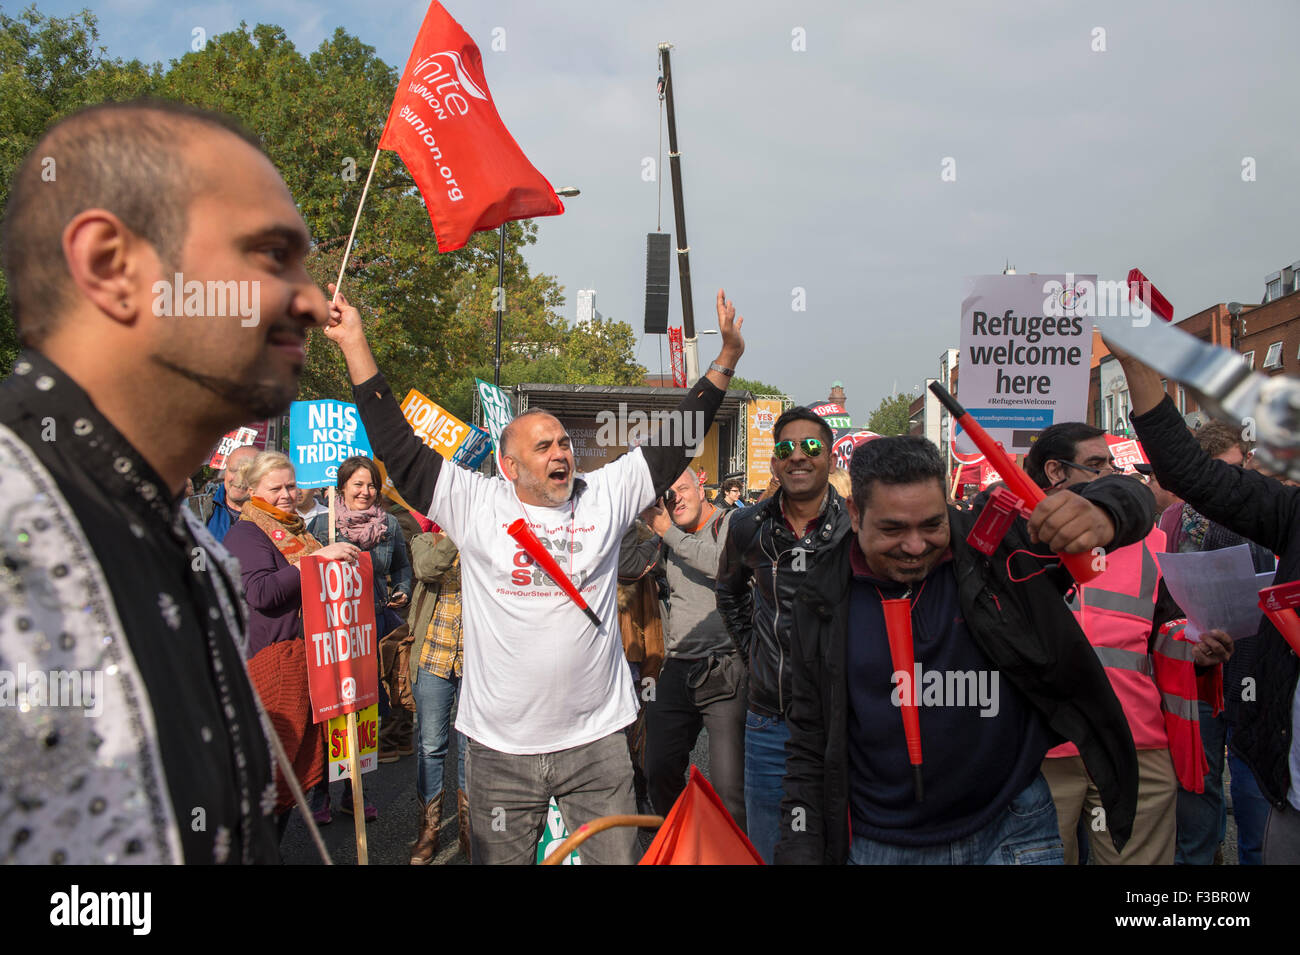 Manchester, UK. 4th October, 2015. TUC National Rally and March, Manchester, UK. Demonstrators gather at the start - Stock Image